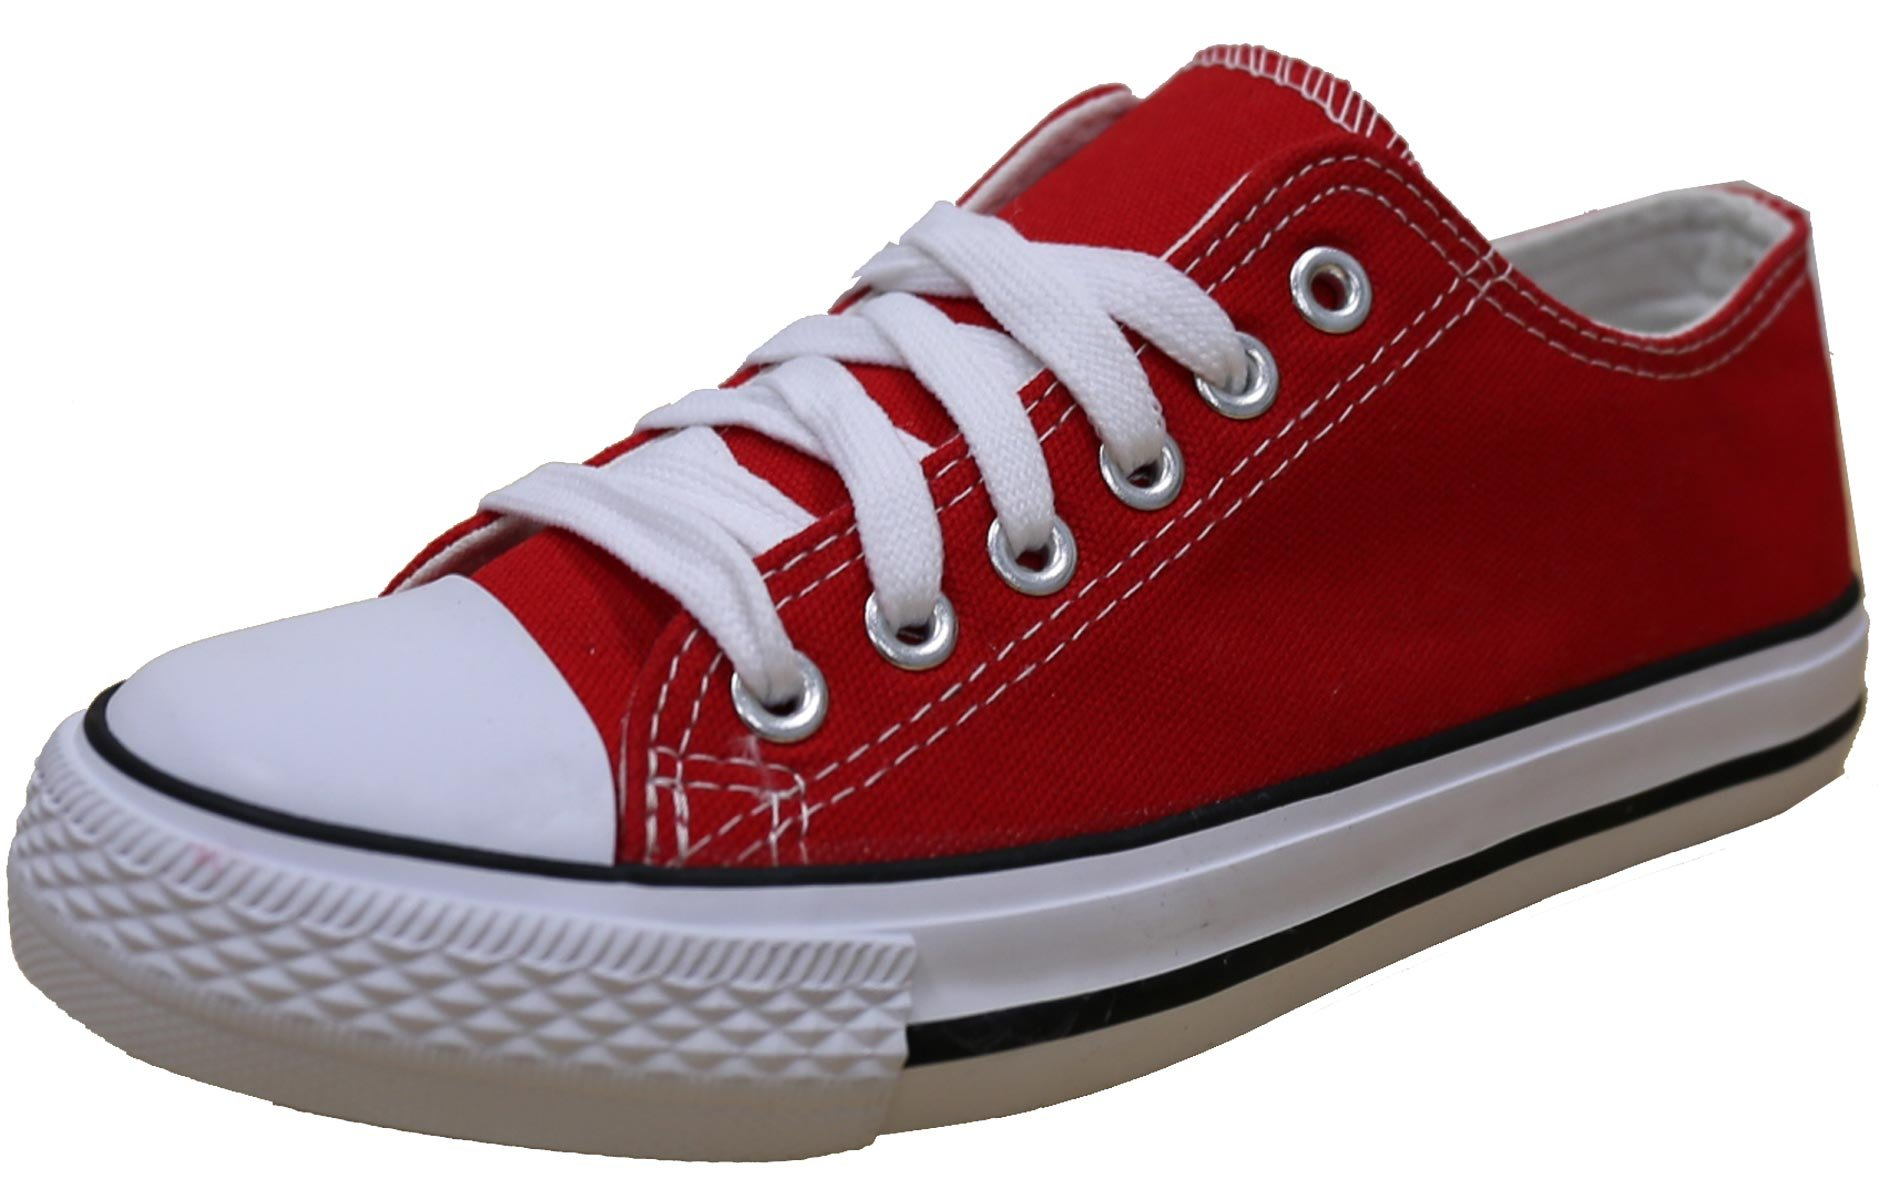 S-3 Women's Low Top Classic Canvas Fashion Sneaker (9 B(M) US, Red)